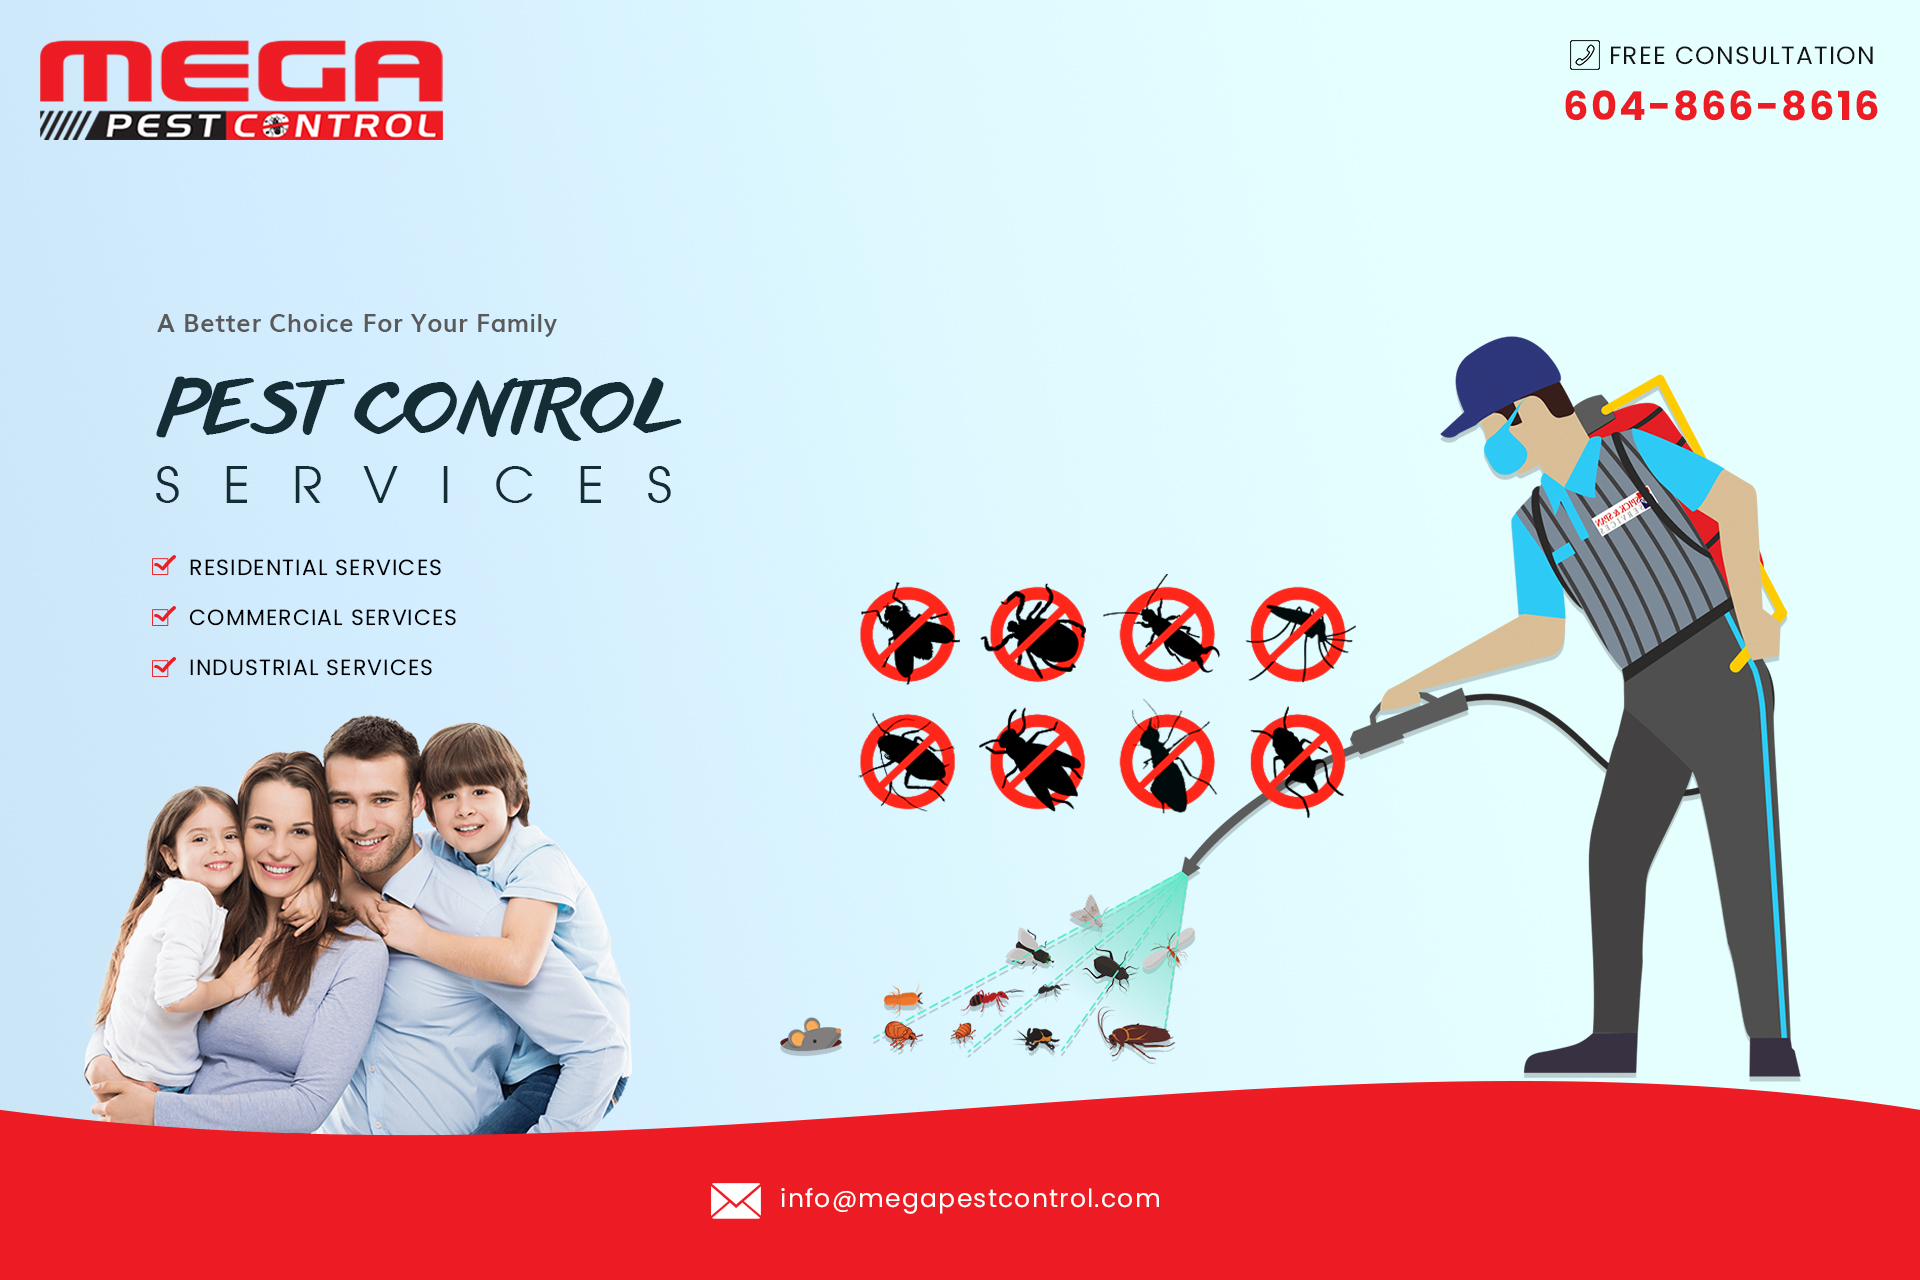 Advanced Technology To Control Pests